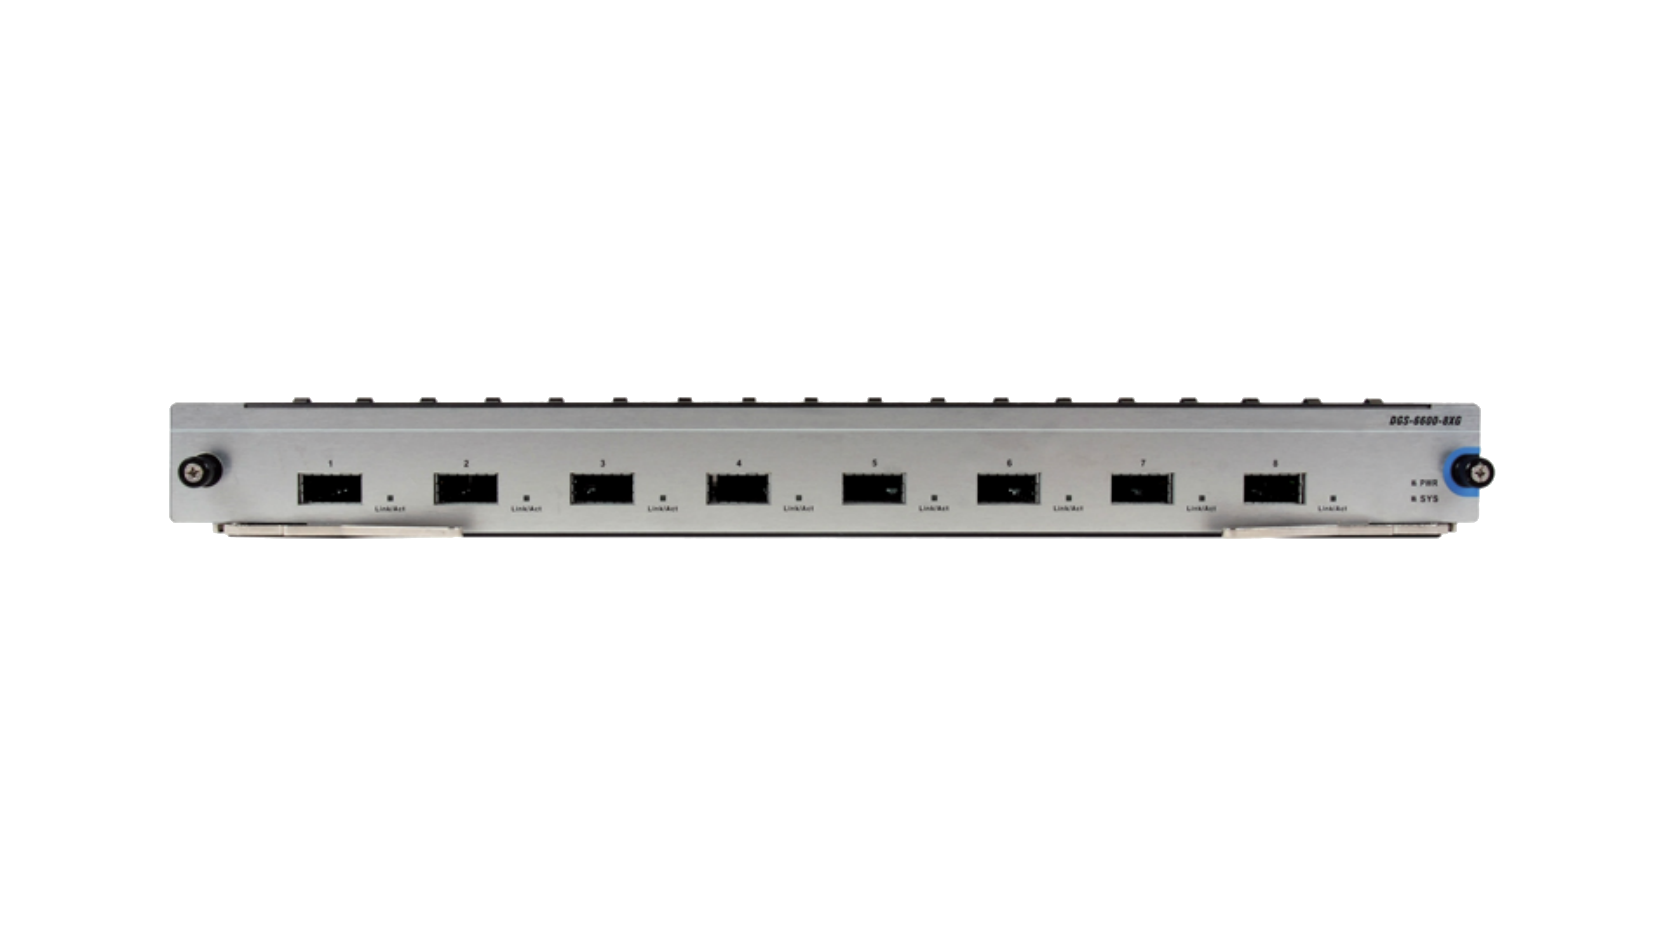 D-Link DGS-6600-48TS Switch Driver for Mac Download